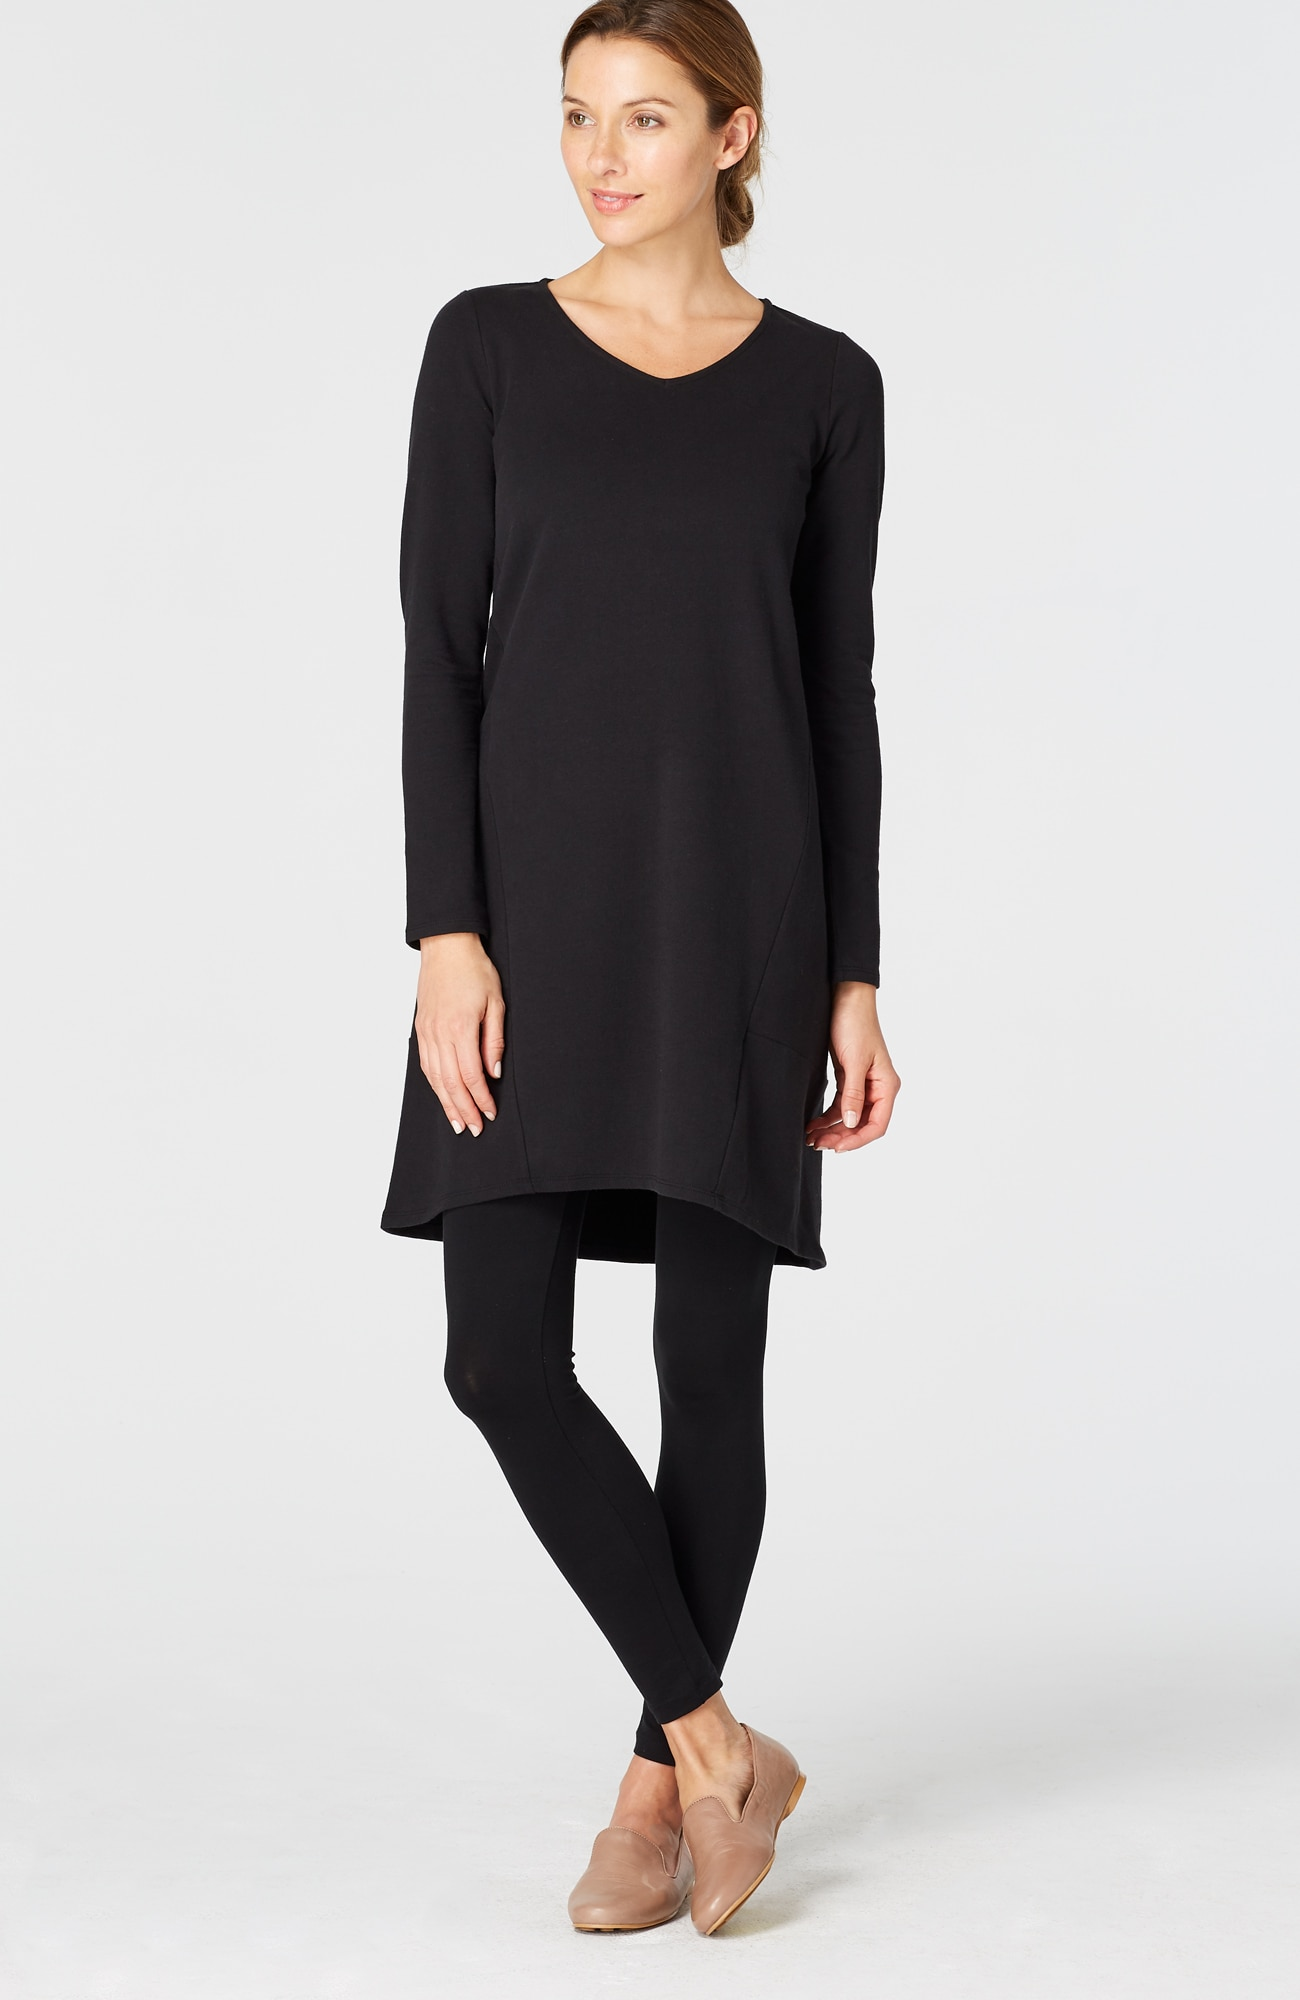 Pure Jill seamed knit dress